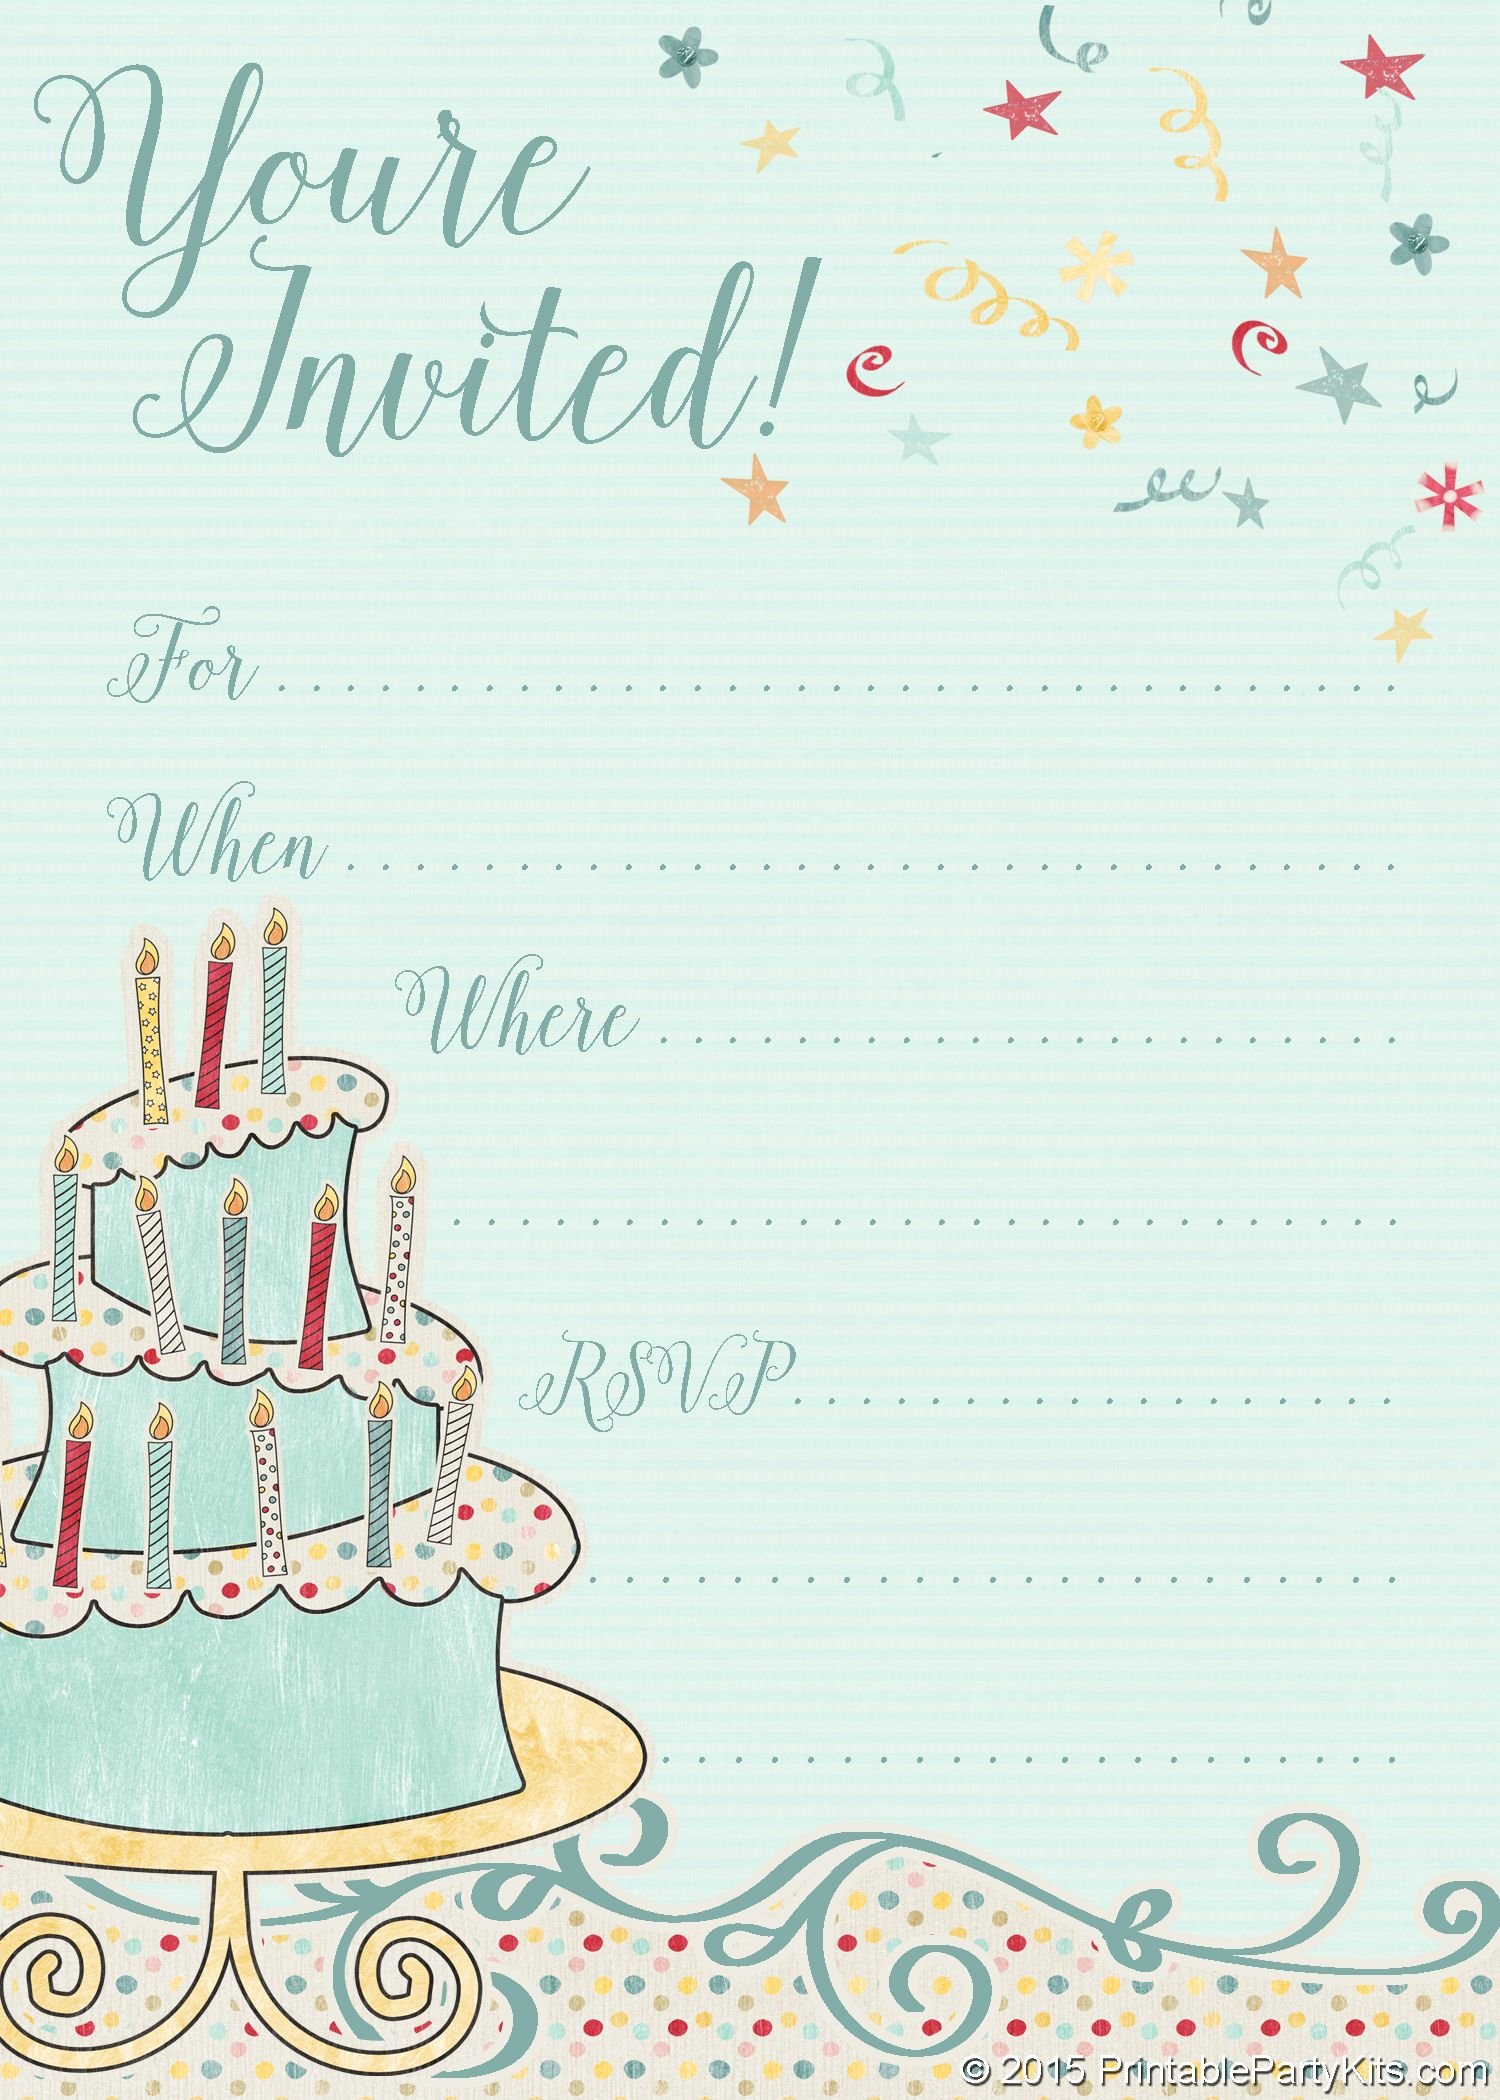 free printable whimsical birthday party invitation